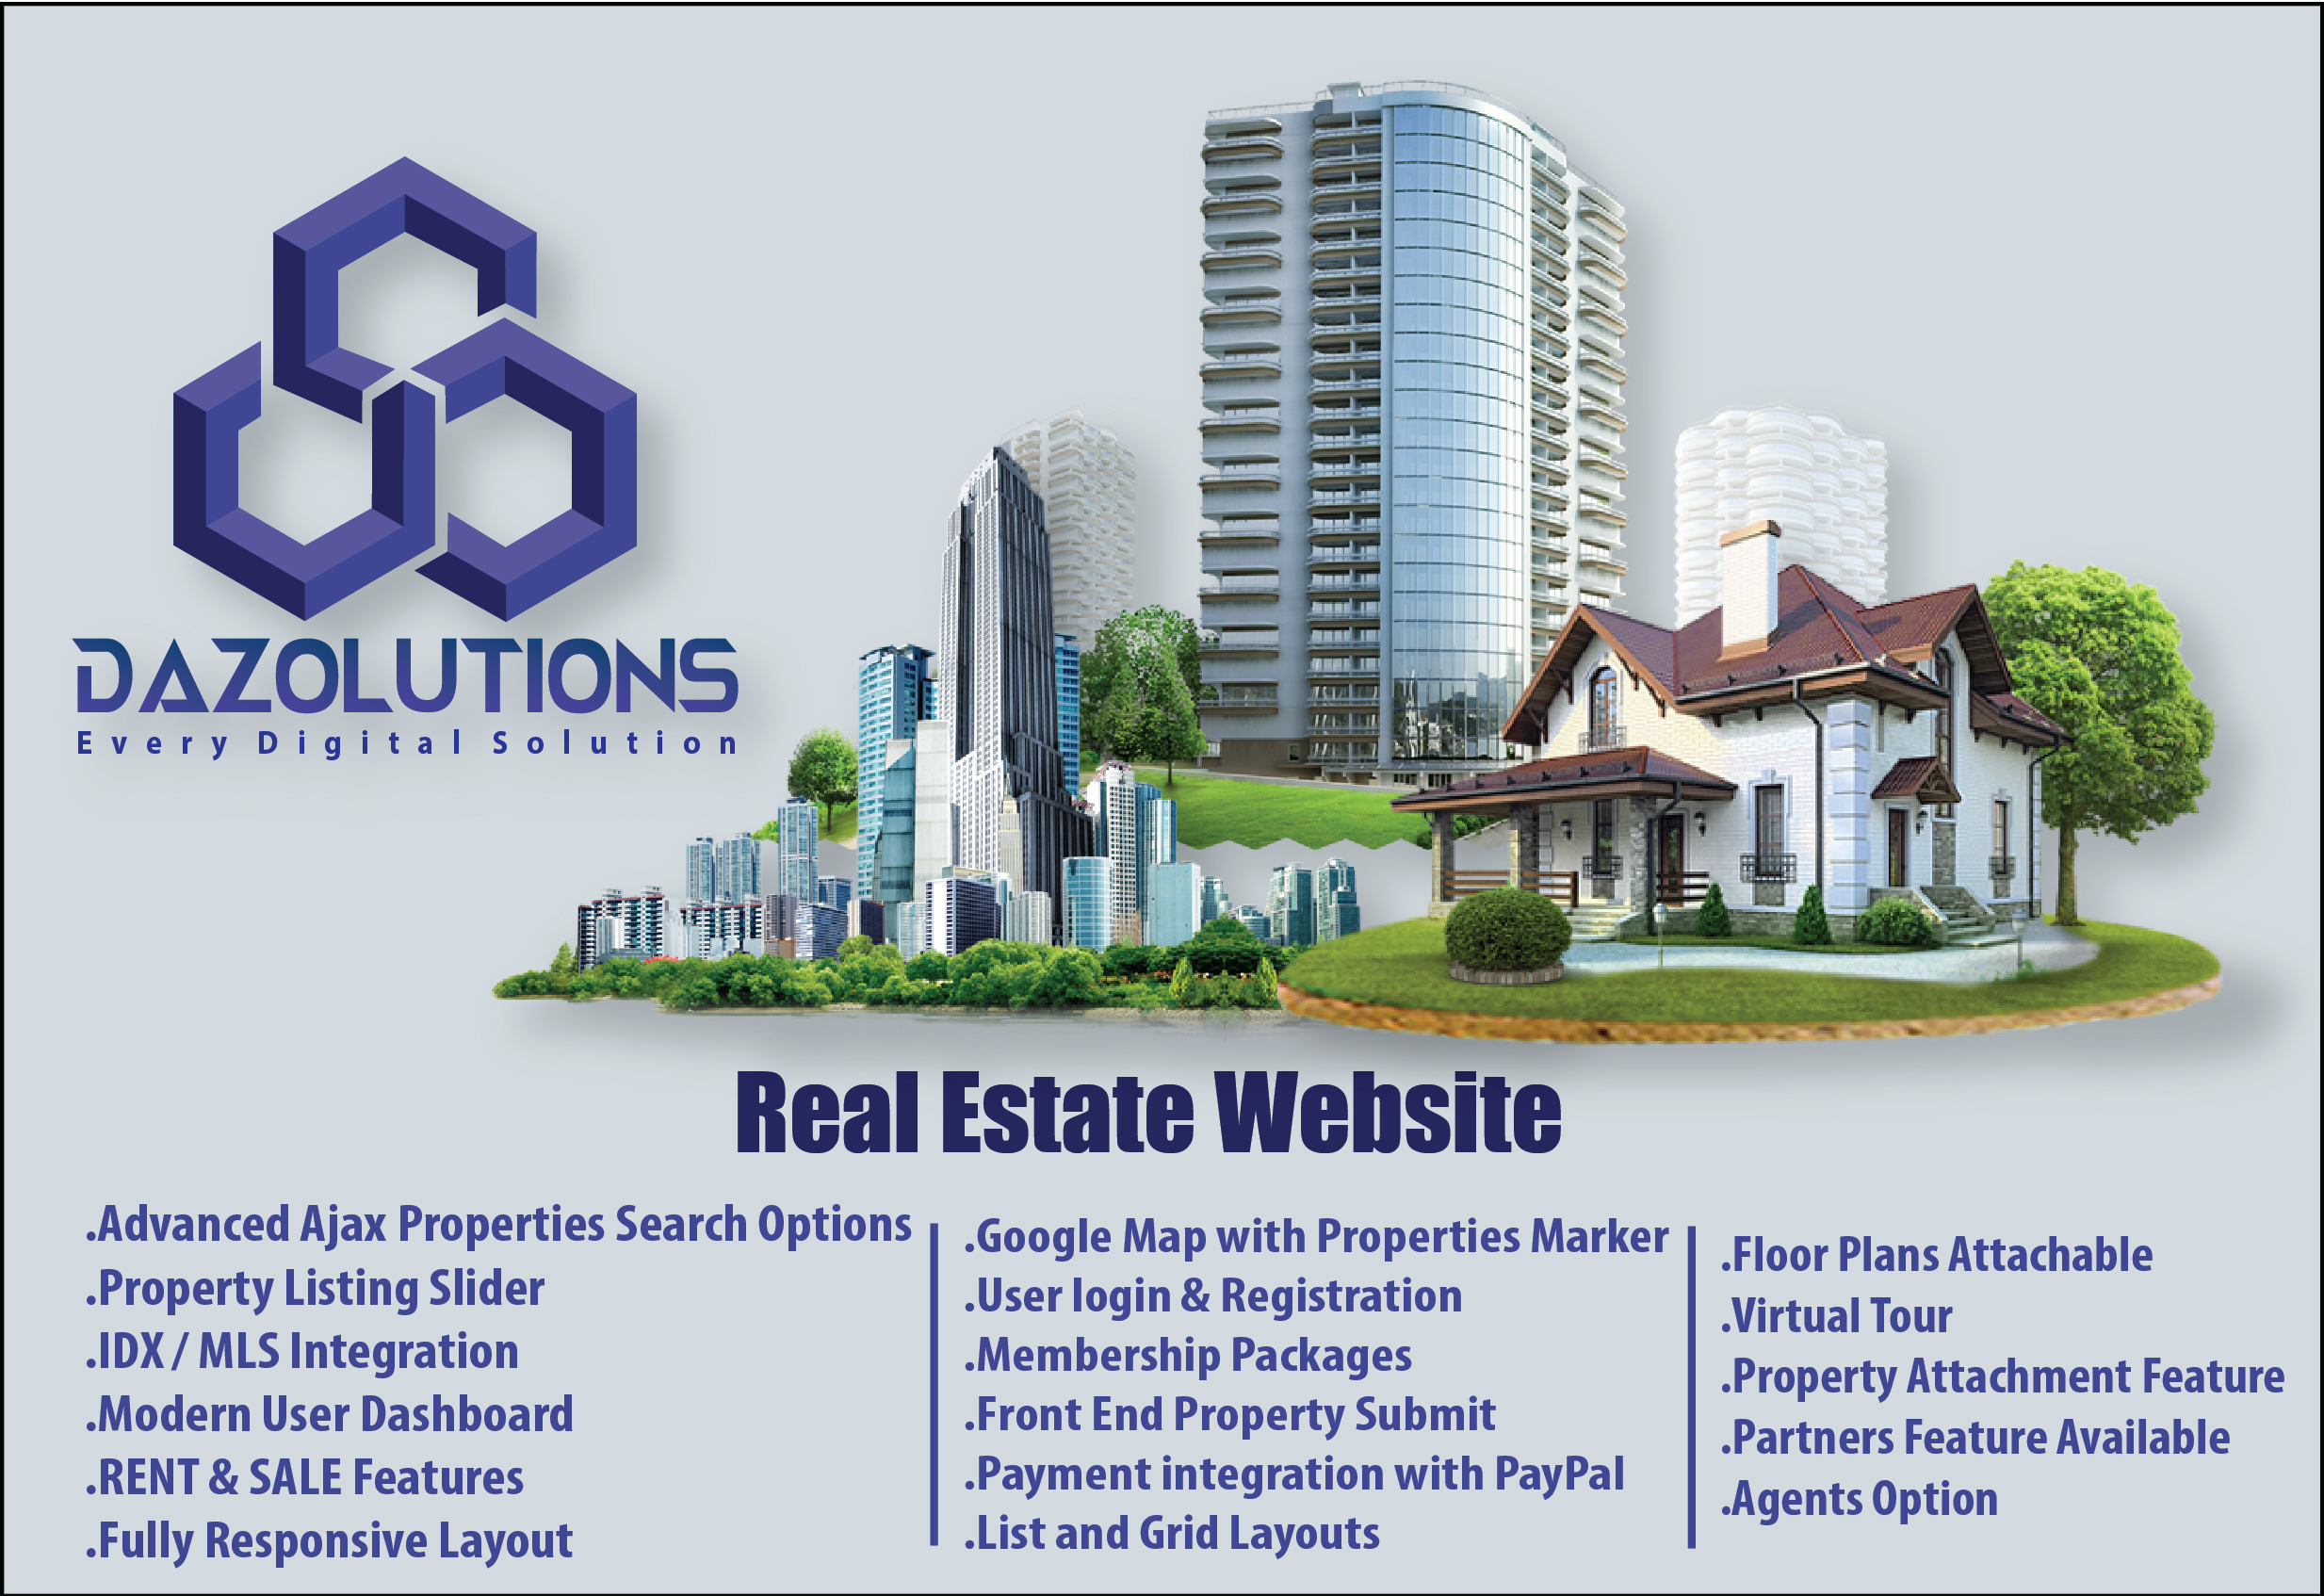 Our Team Build professional real estate websites for you